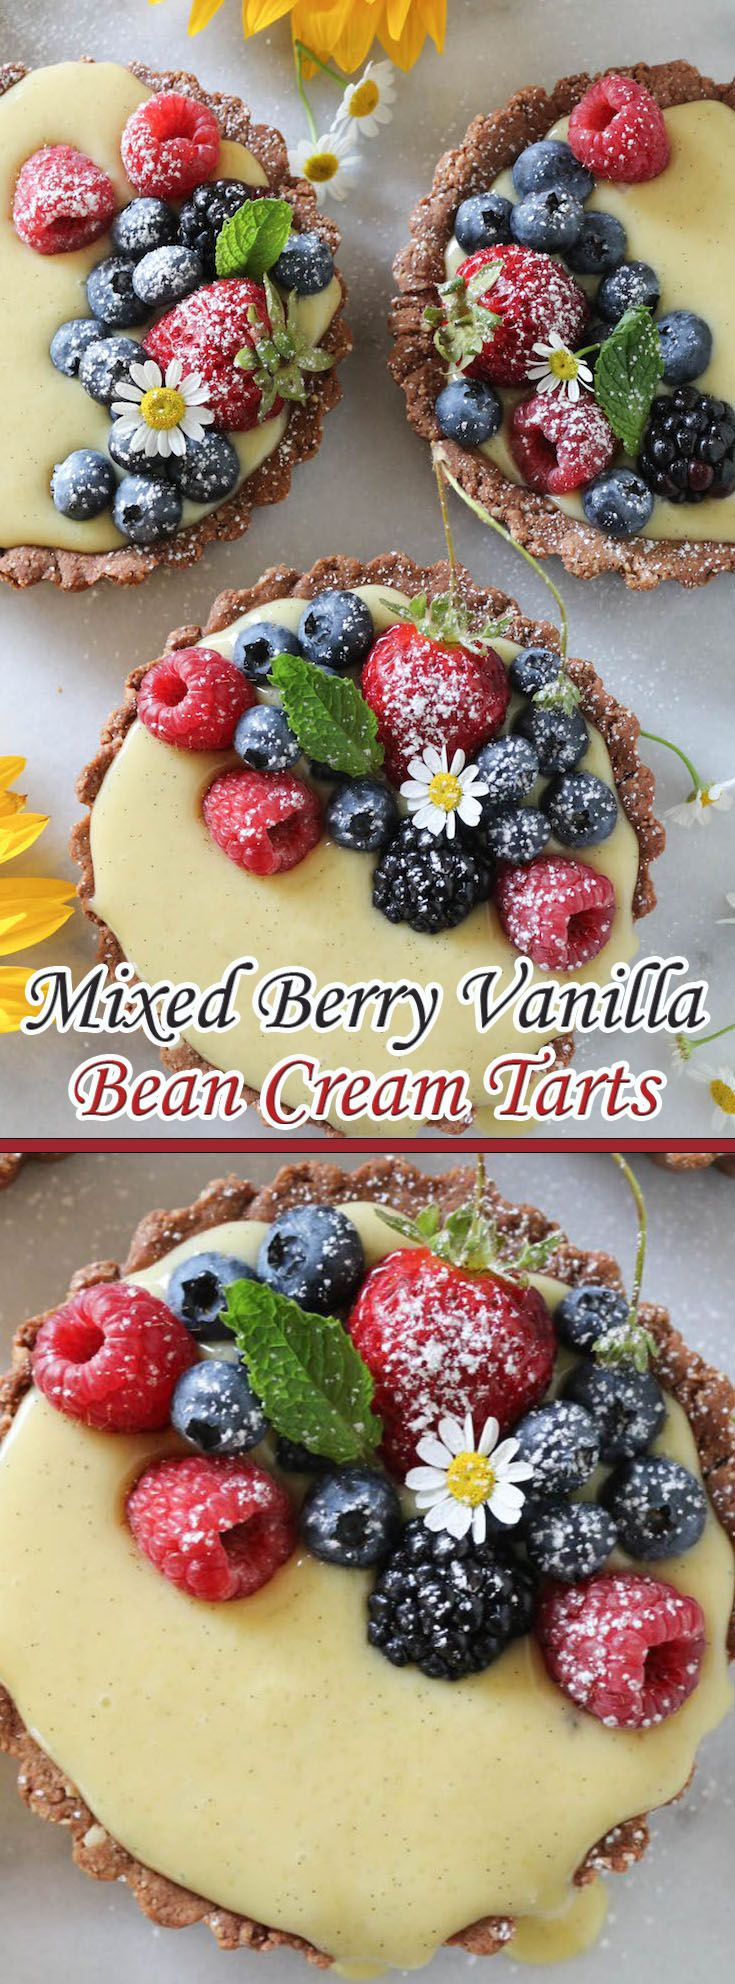 Mixed Berry Vanilla Bean Cream Tarts                              …